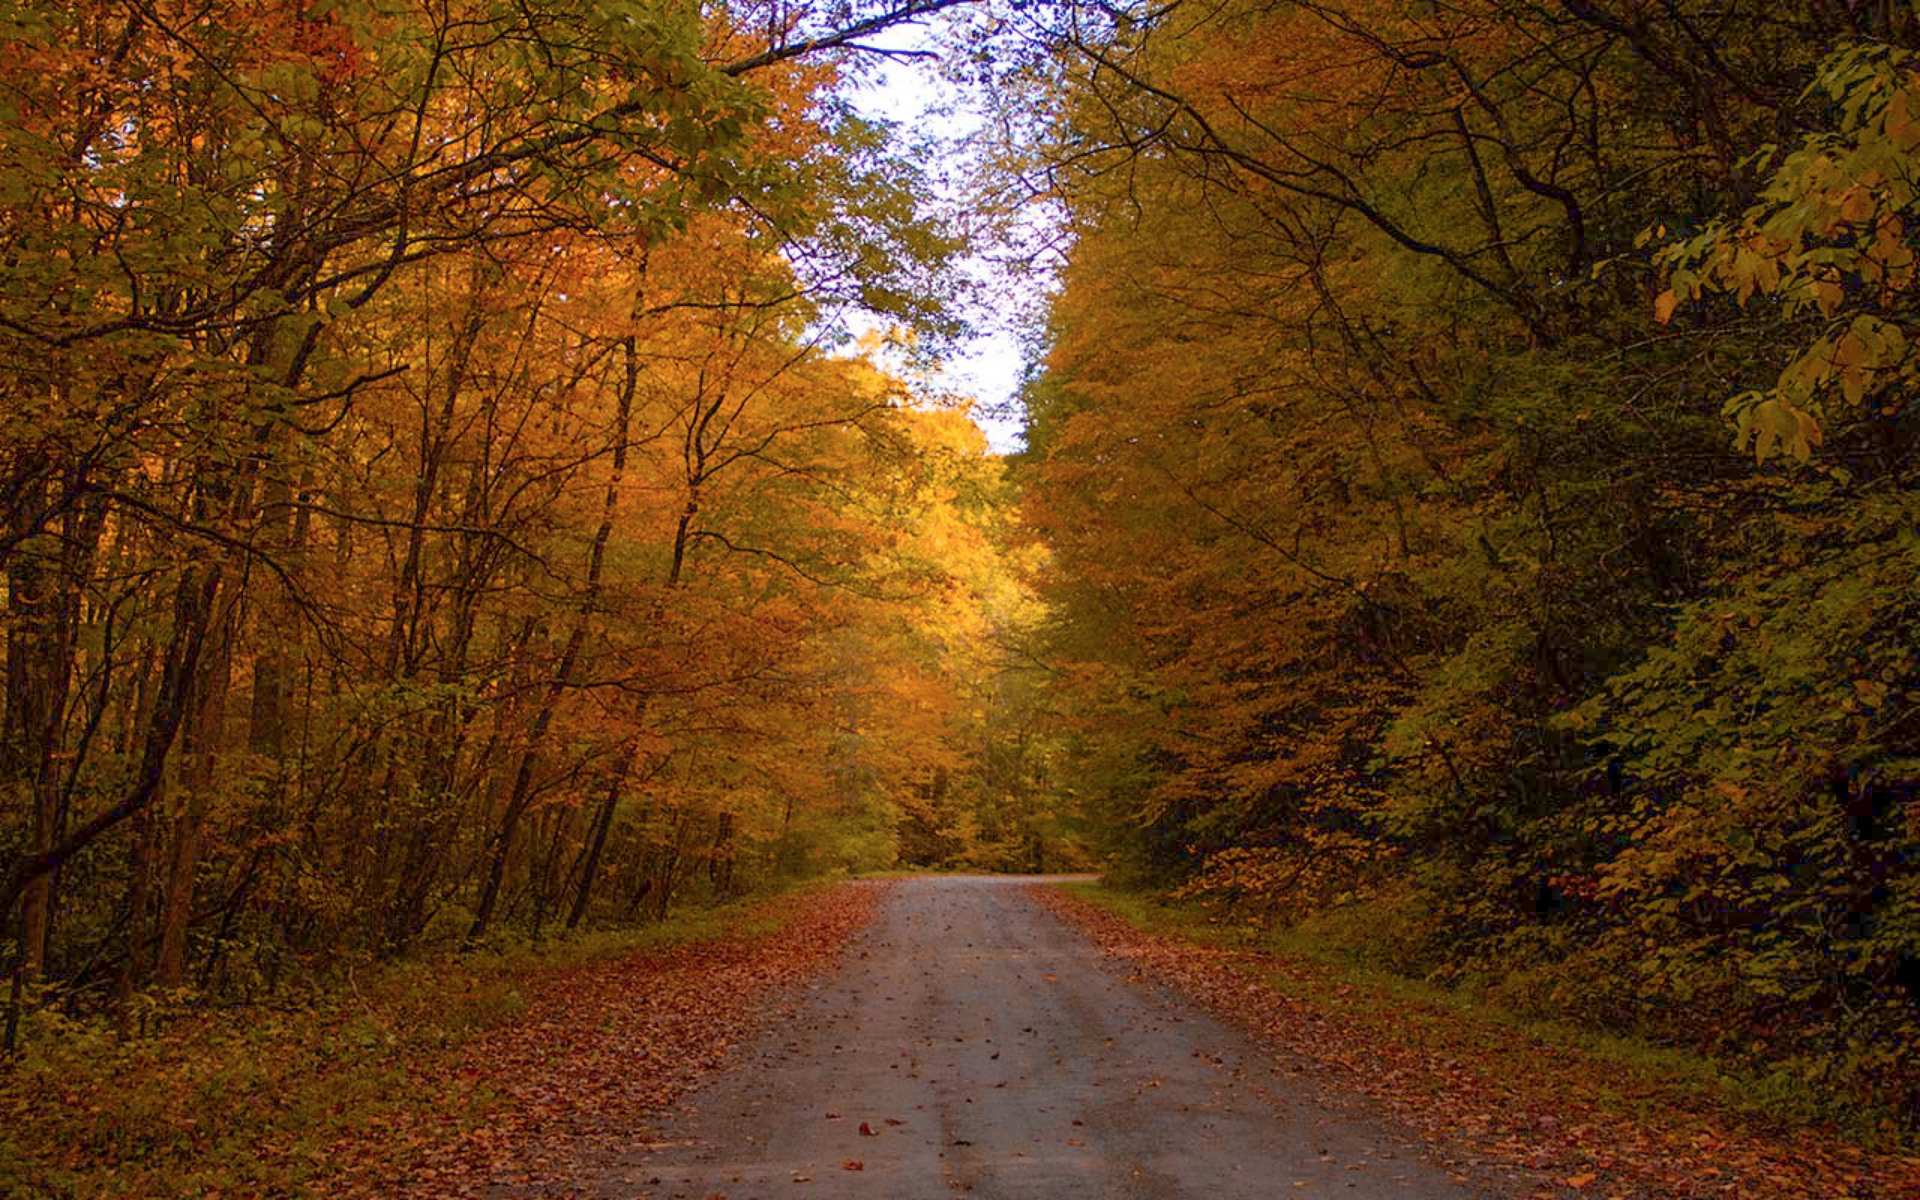 backroads in the fall